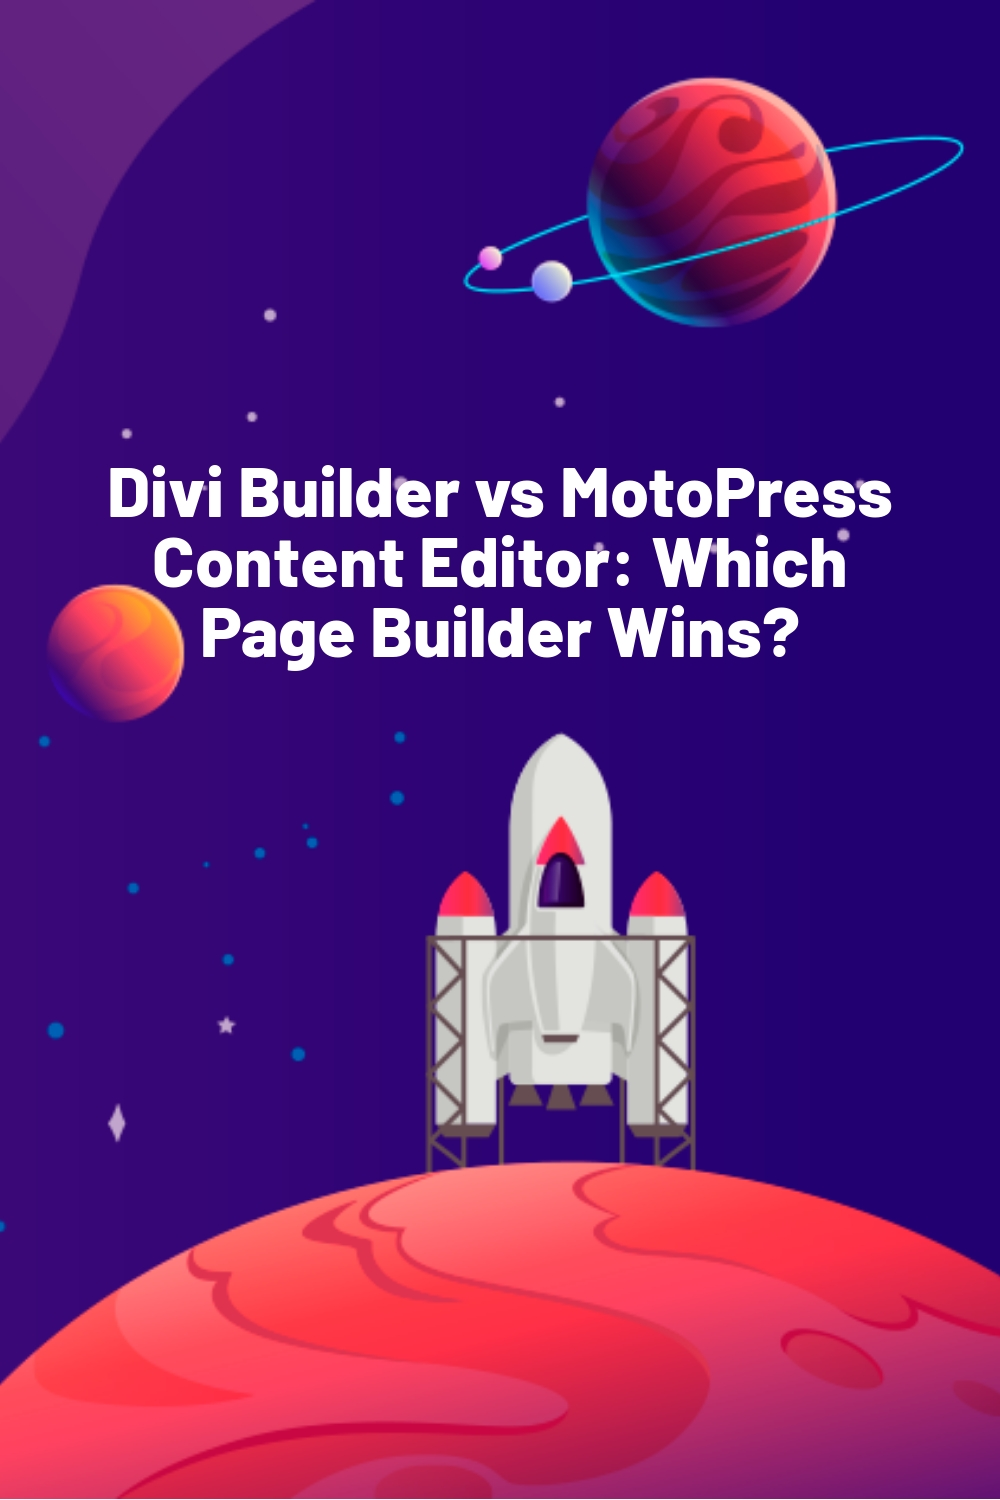 Divi Builder vs MotoPress Content Editor: Which Page Builder Wins?